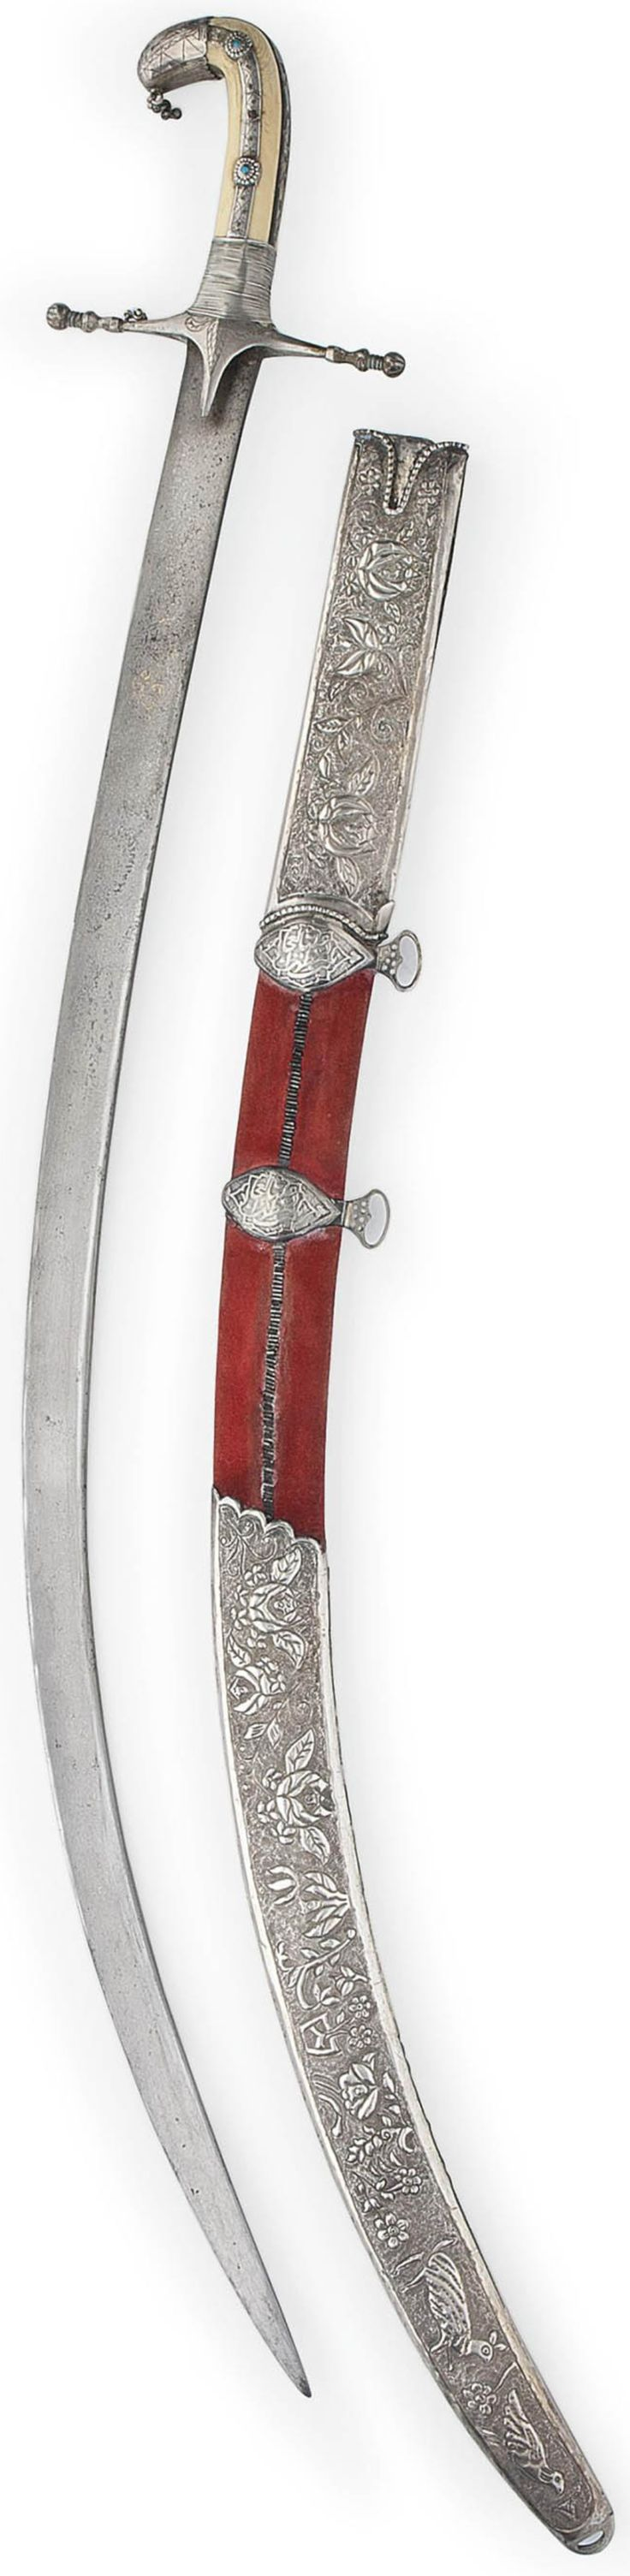 Persian (safavid) shamshir / saif, 17th c, single edged curved watered-steel blade with gold inlaid inscription cartouches, ascribed to (Assad) Ullah, 19th c Syrian curved bone hilt with silver cap on pommel, wide silver rain guards with rounded knob finials, handle with four thin bands of engraved silver front and back with raised rosettes with inset turquoise stones, 19th c red velvet sheath with floral silver repoussé locket and chape and two belt hooks, 38¼in. (97.2cm.) long.